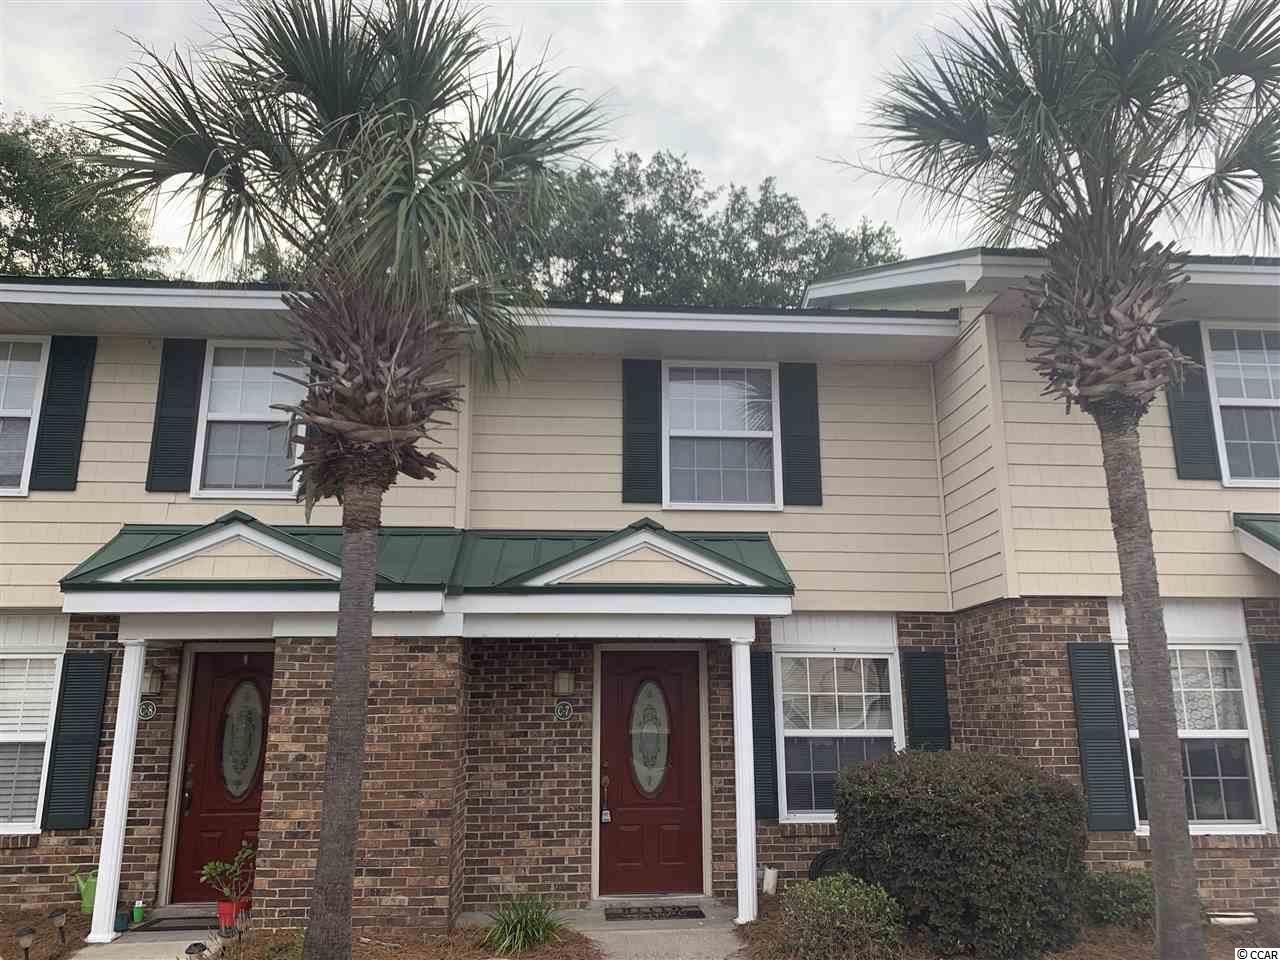 Great location close to Coastal Carolina University, Hospitals, and just minutes from beaches, golfing, dining and entertainment. This freshly painted and newly carpeted 2 bedroom condo will make a great primary, second or investment property. Priced to sell so don't hesitate, call today.